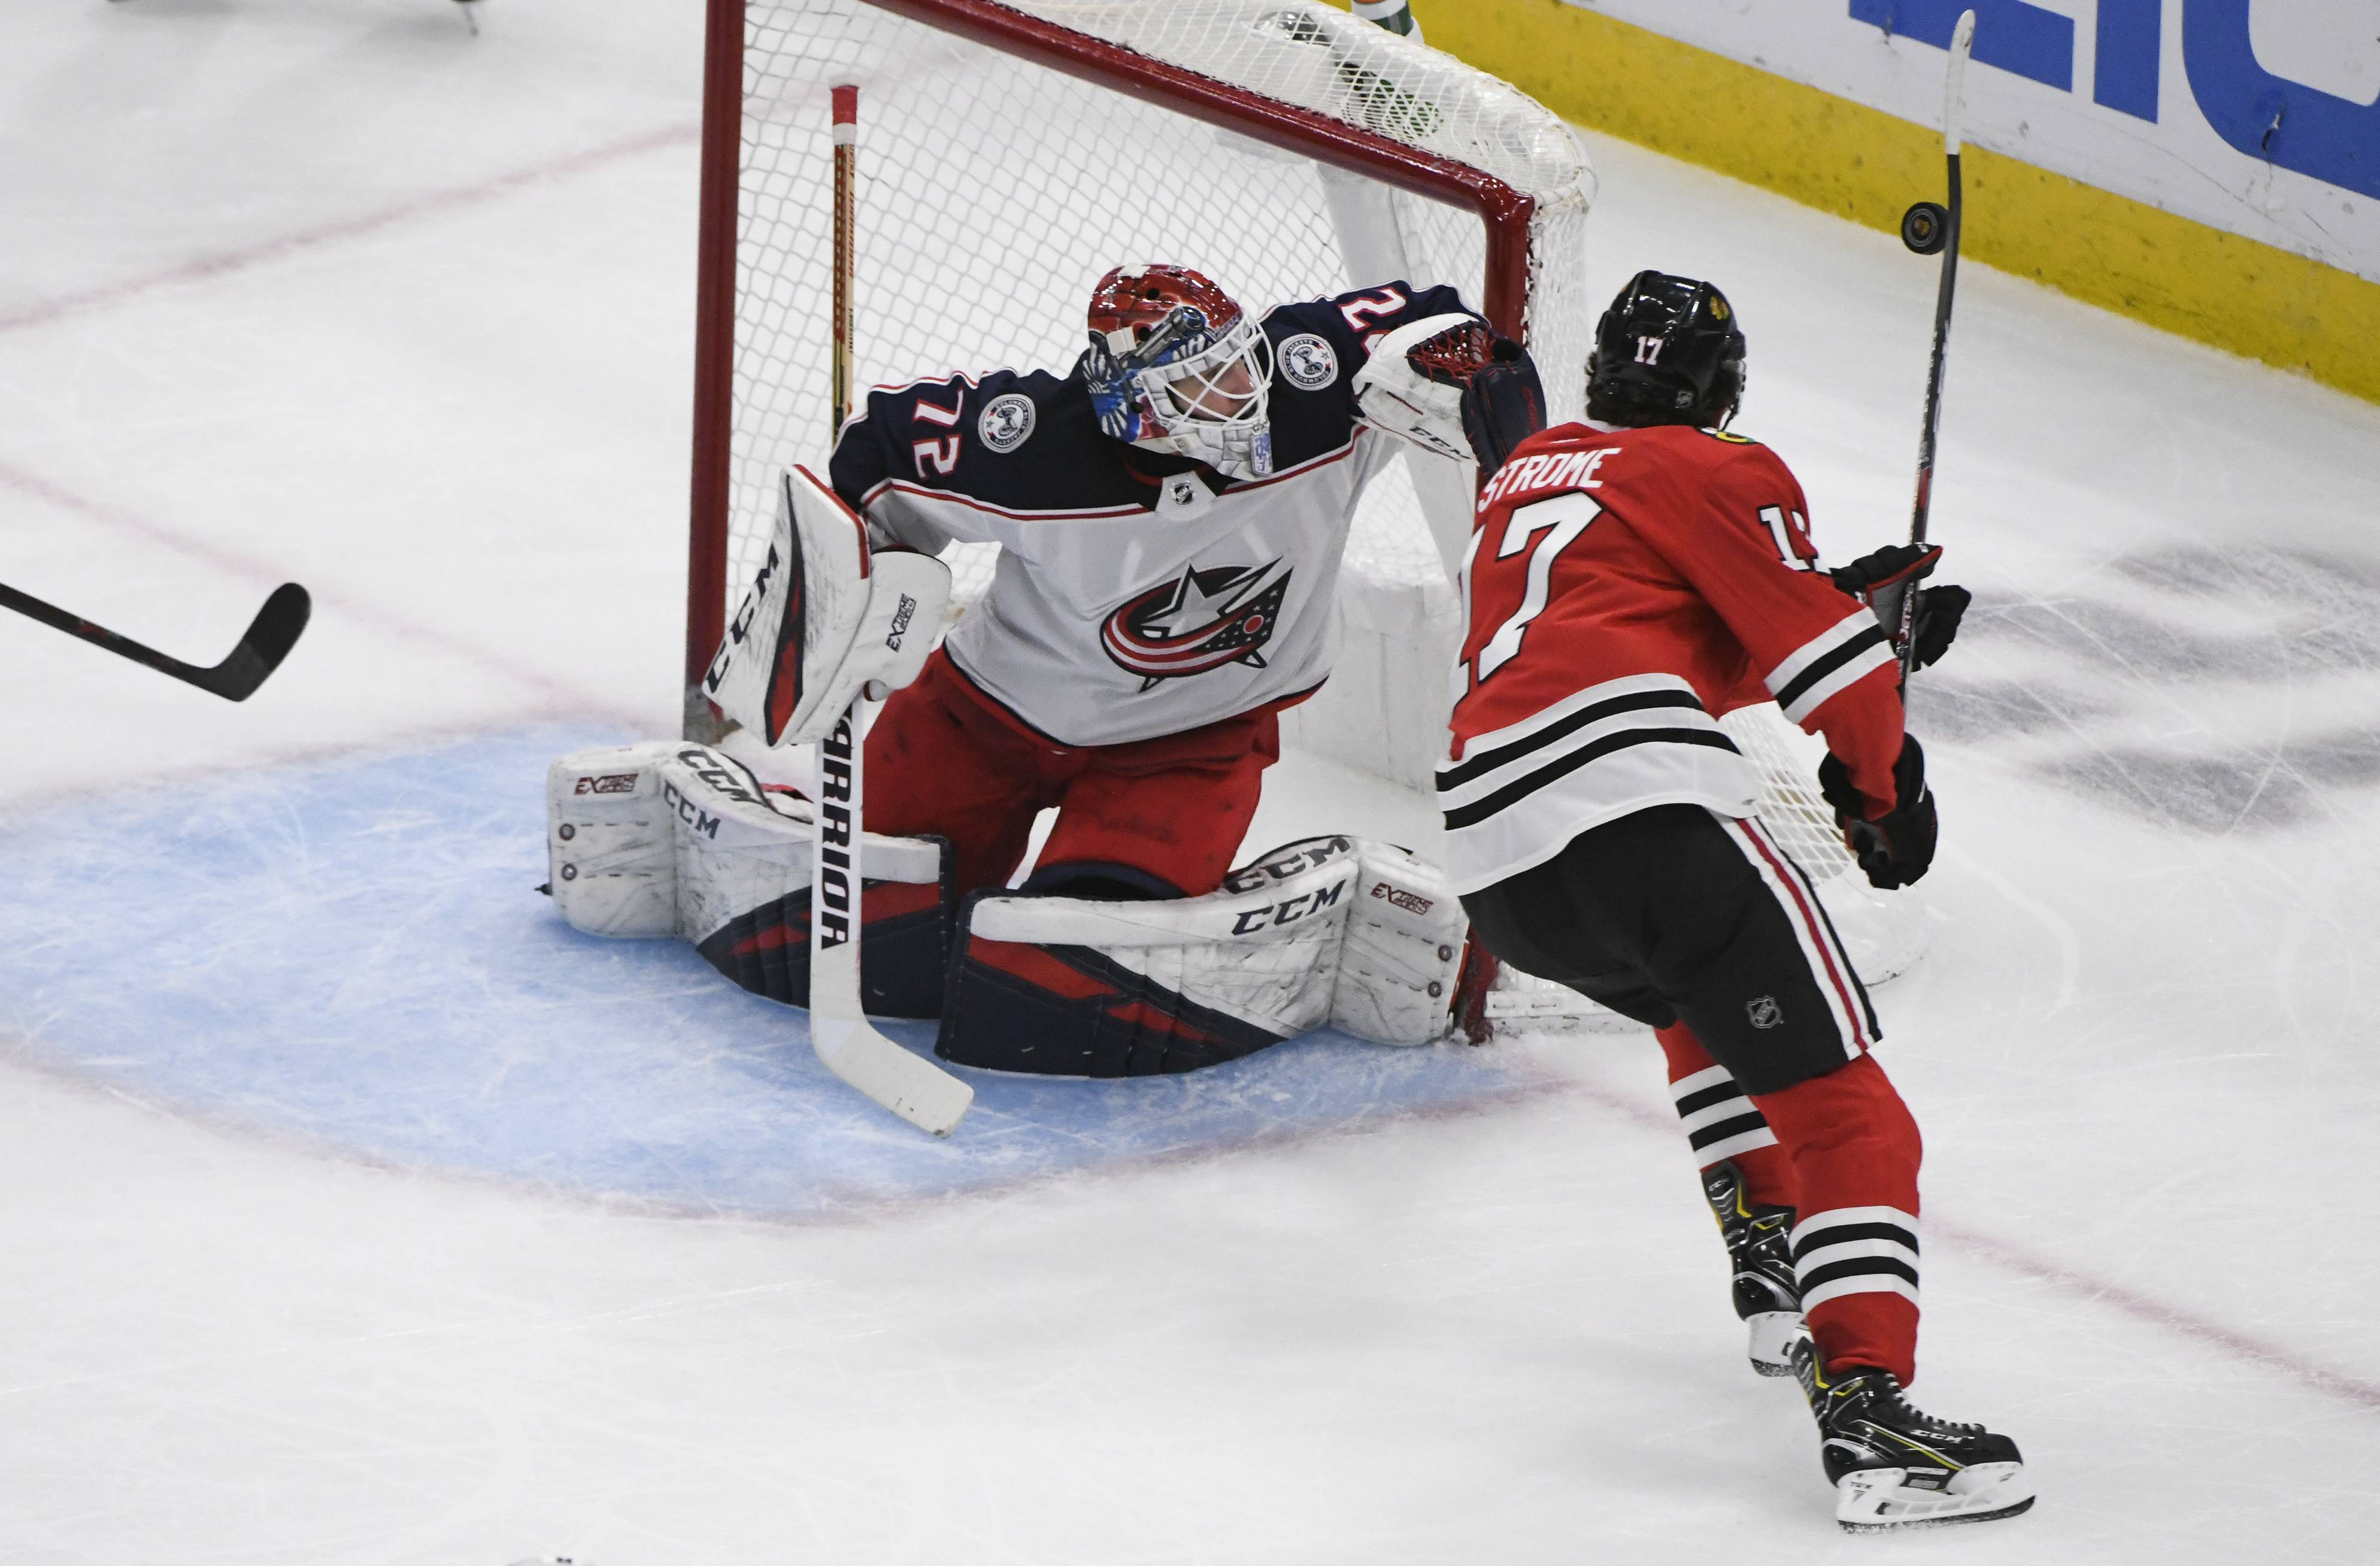 Columbus Blue Jackets goaltender Sergei Bobrovsky (72) defends against Chicago Blackhawks center Dylan Strome (17), who tries to knock down the puck during the second period of an NHL hockey game Saturday, Feb. 16, 2019, in Chicago. (AP Photo/Matt Marton)